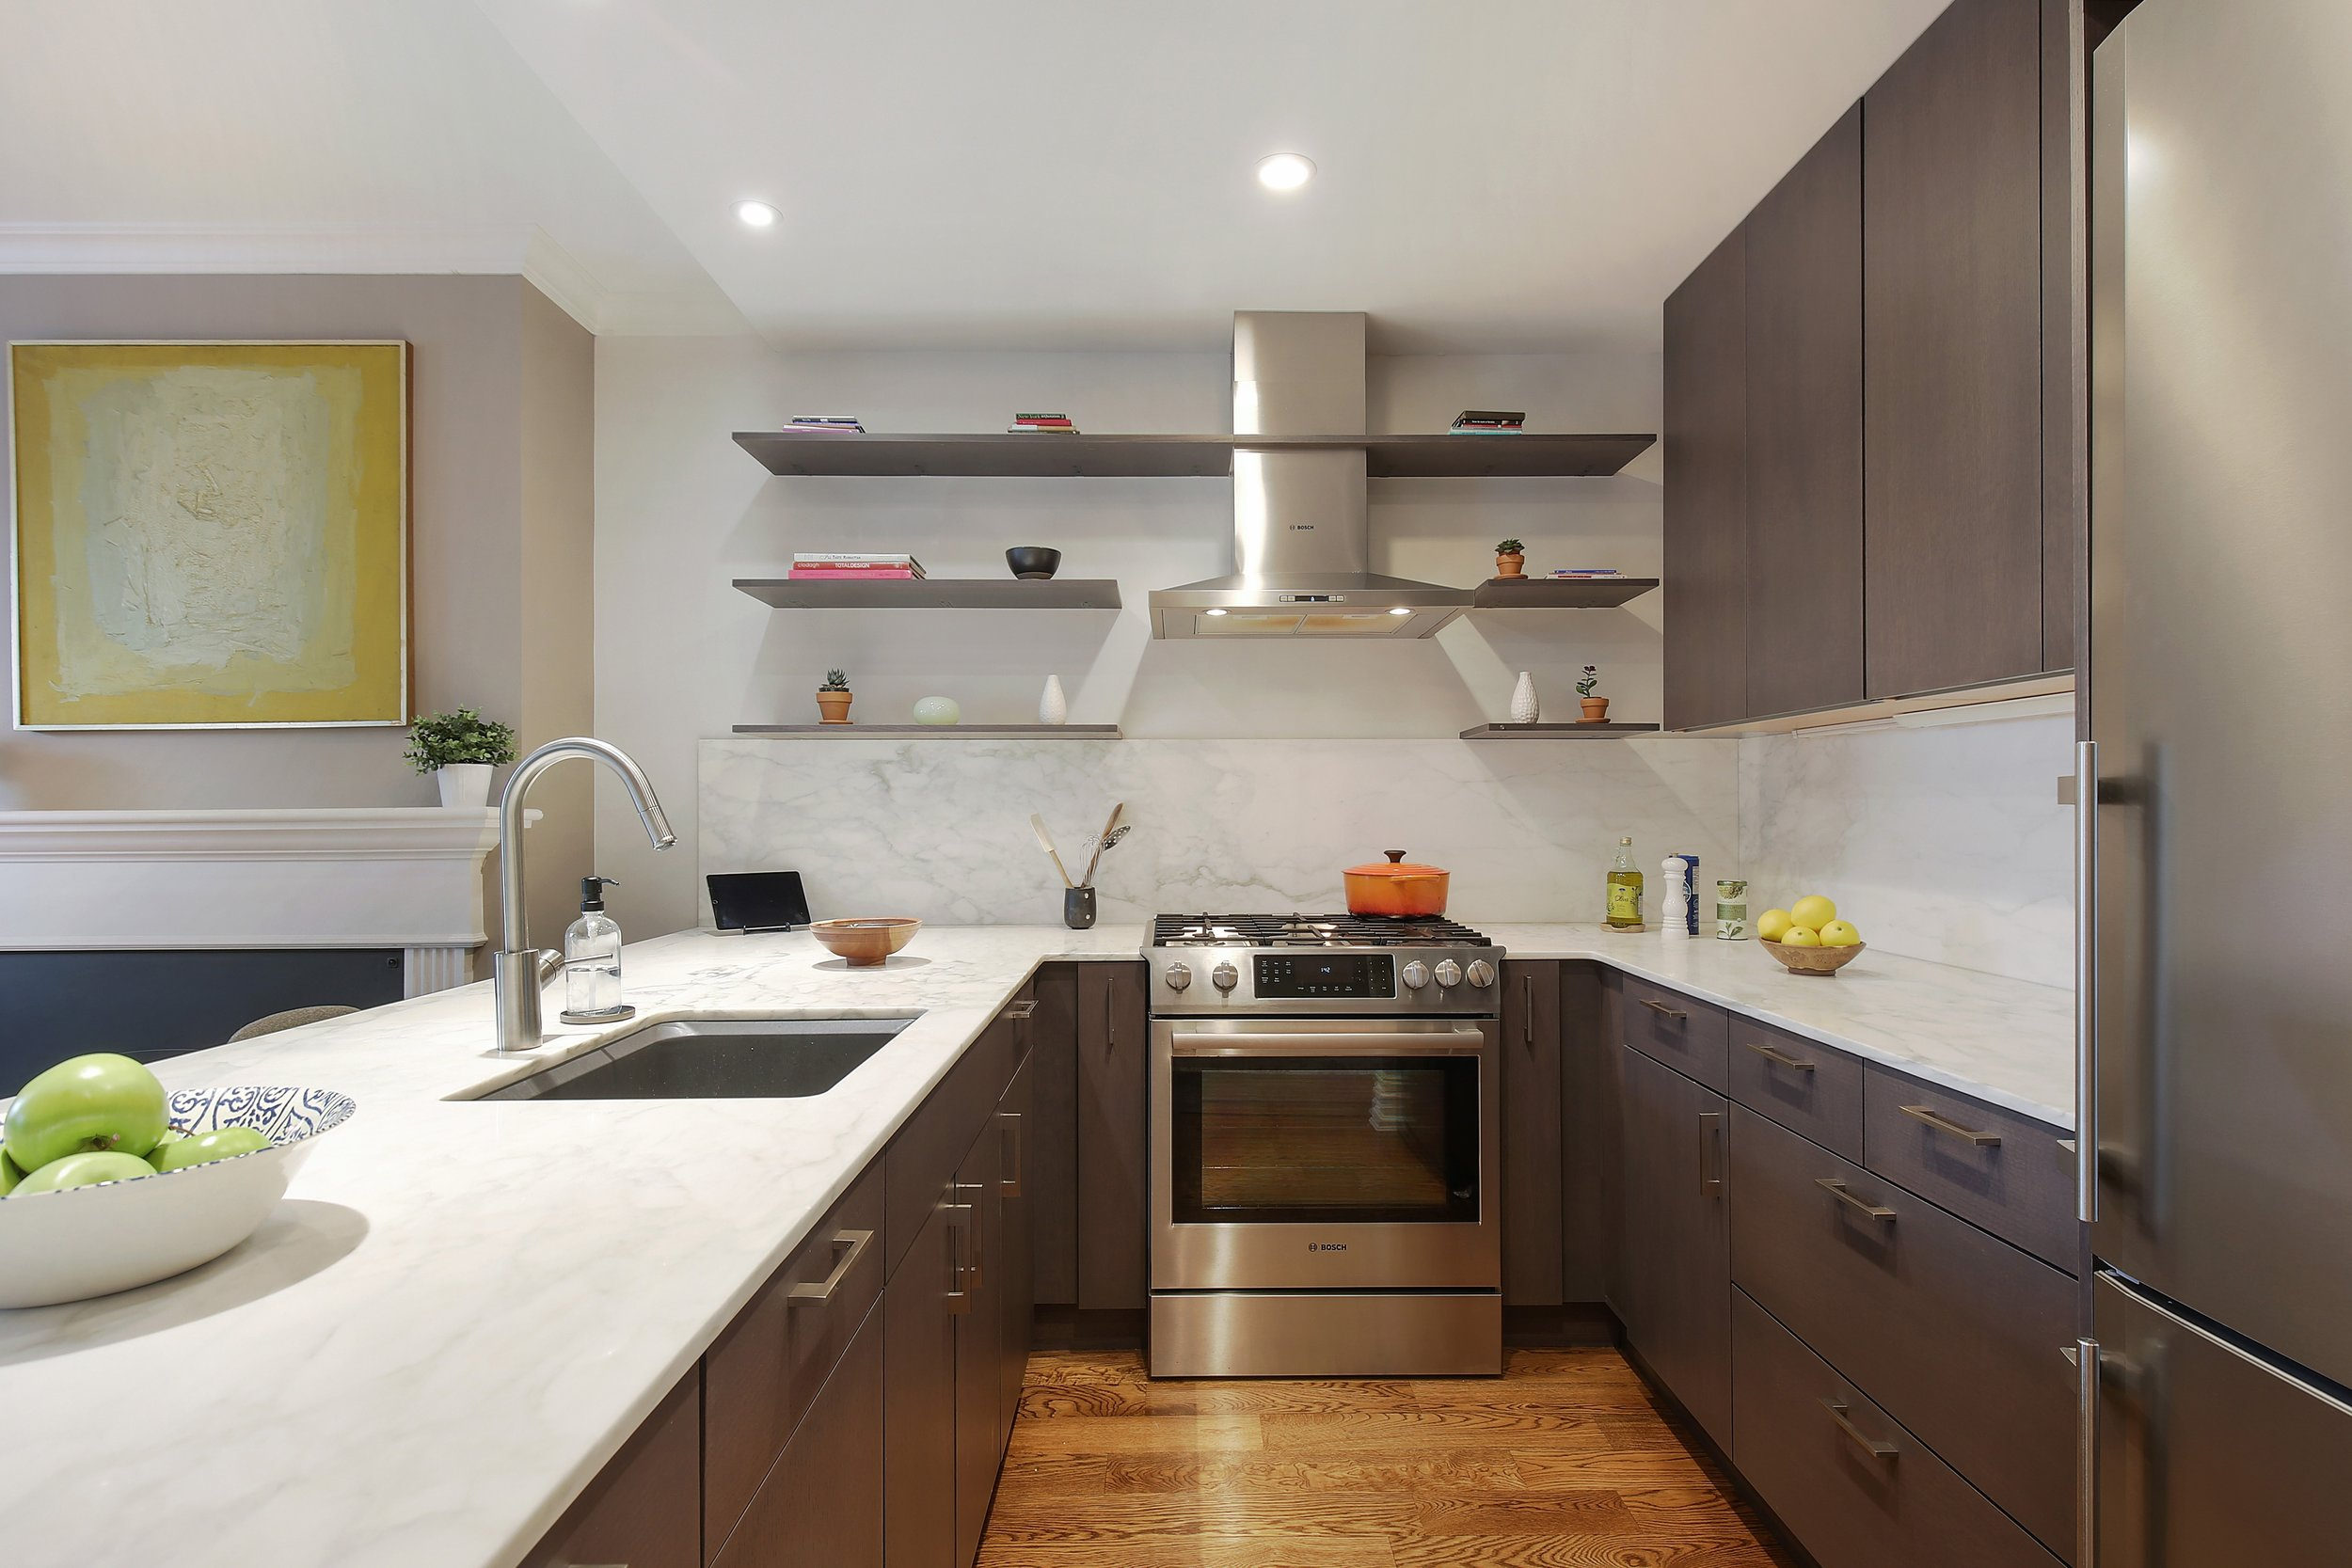 05_217LafayetteAvenue_4_177_Kitchen_HiRes.jpg